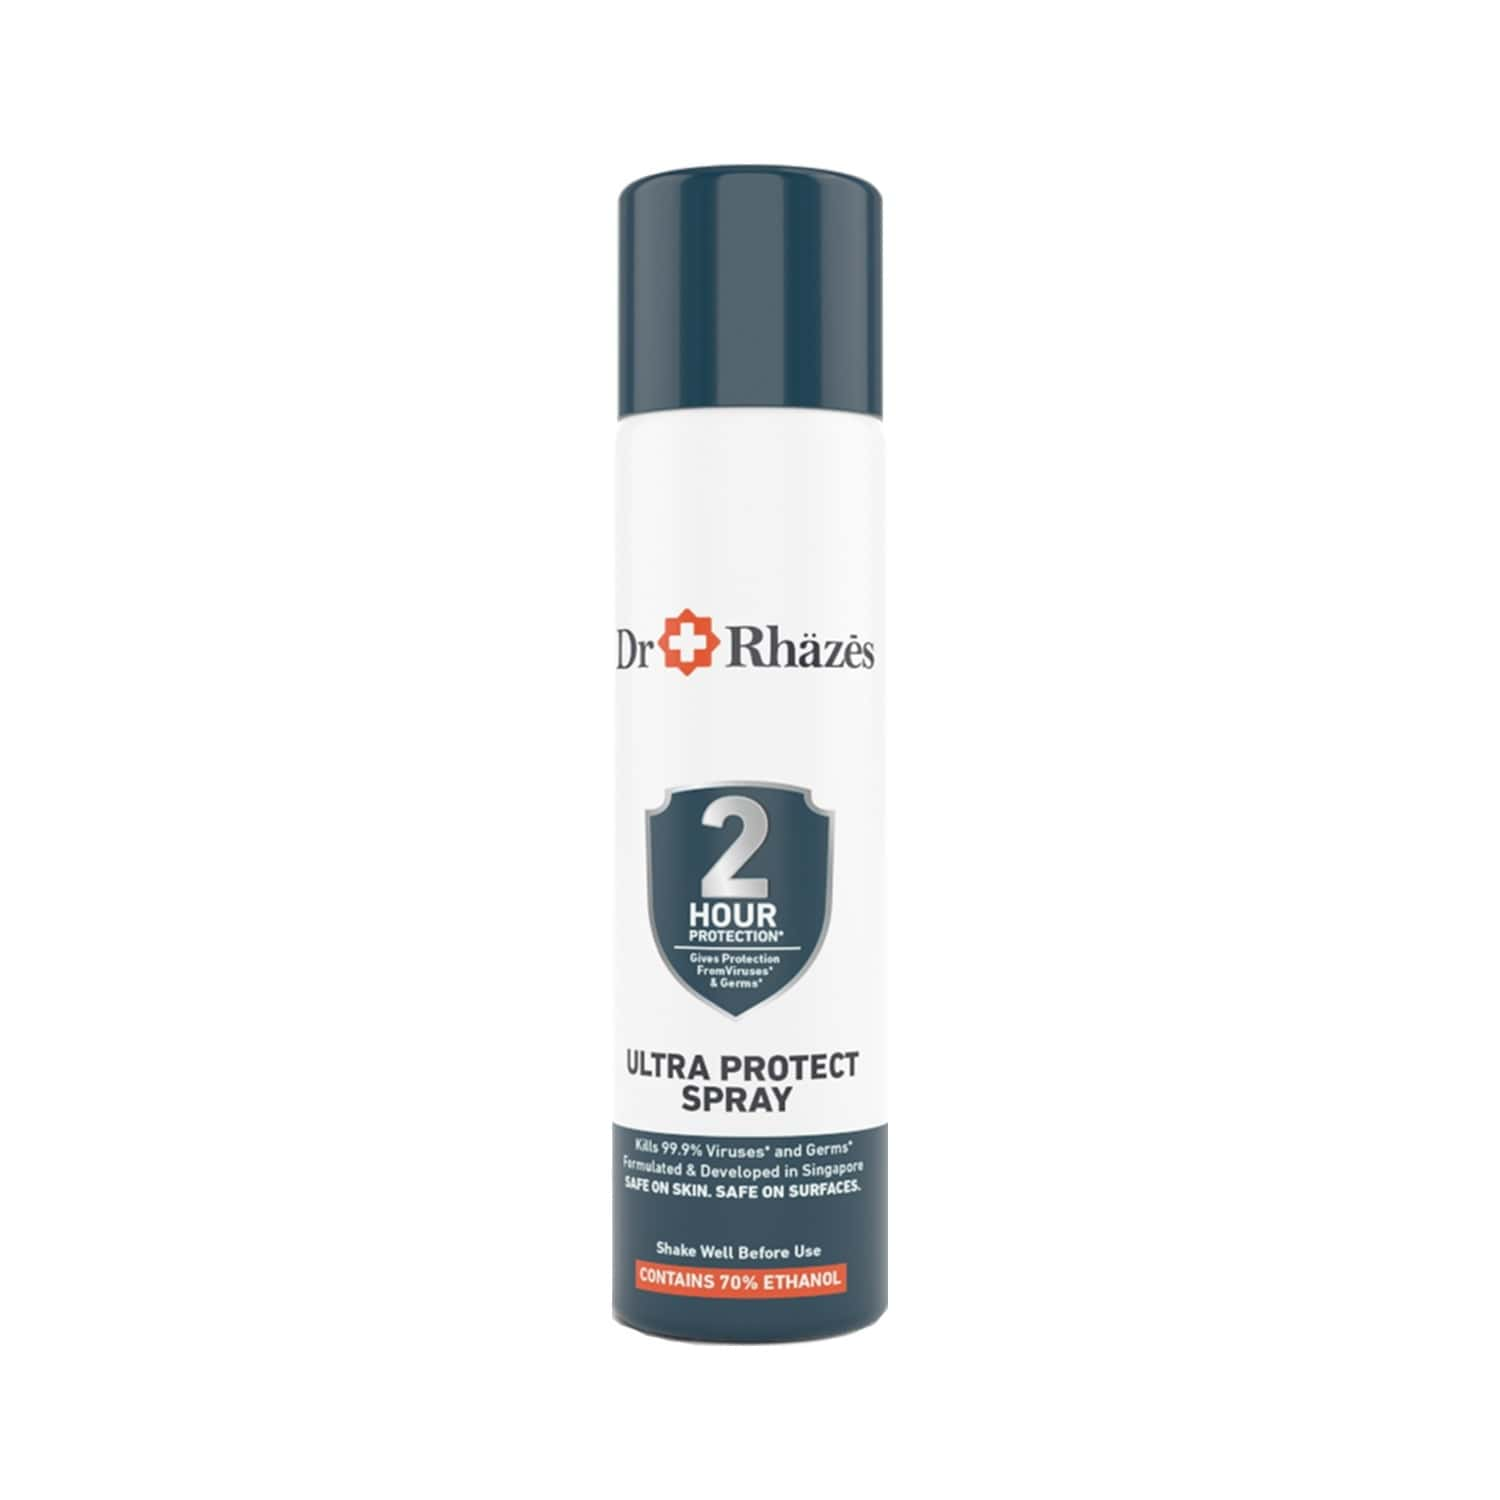 Dr Rhazes Ultra Protect Spray | 2 Hour Protection (83 Gm / 110 Ml)